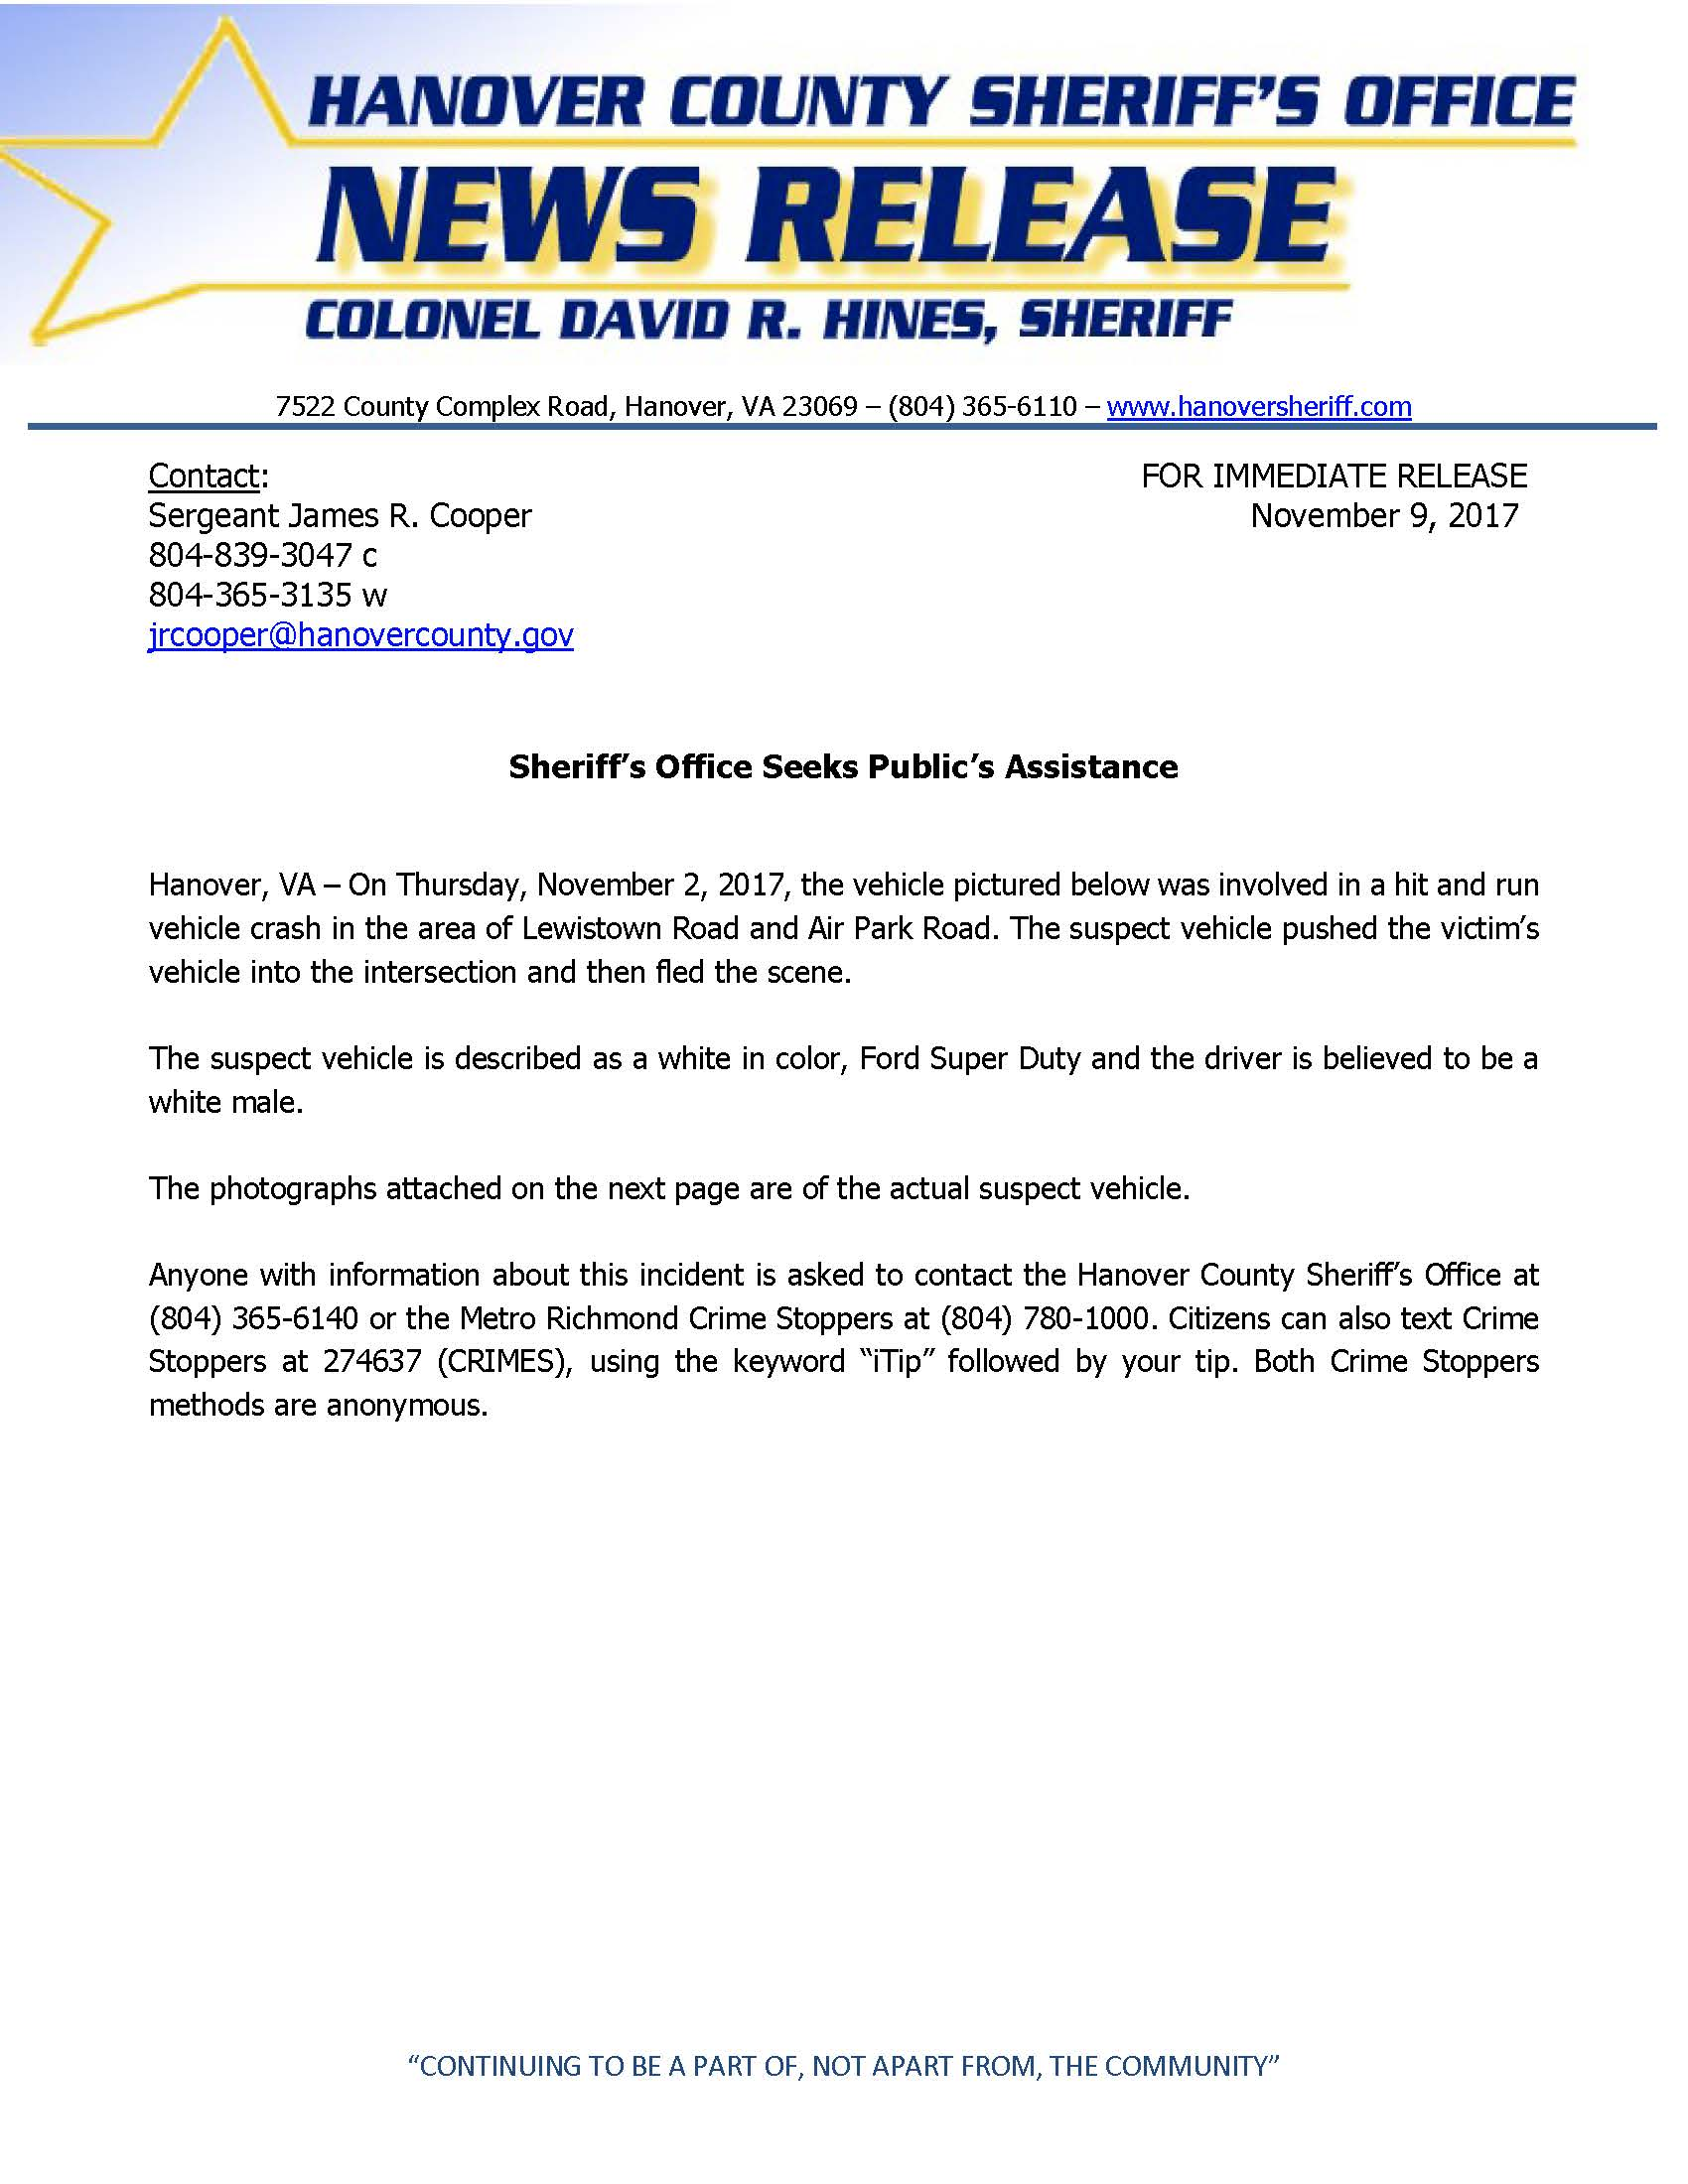 HCSO - Sheriffs Office Seeks Publics Assisitance- Nov. 9, 2017_Page_1